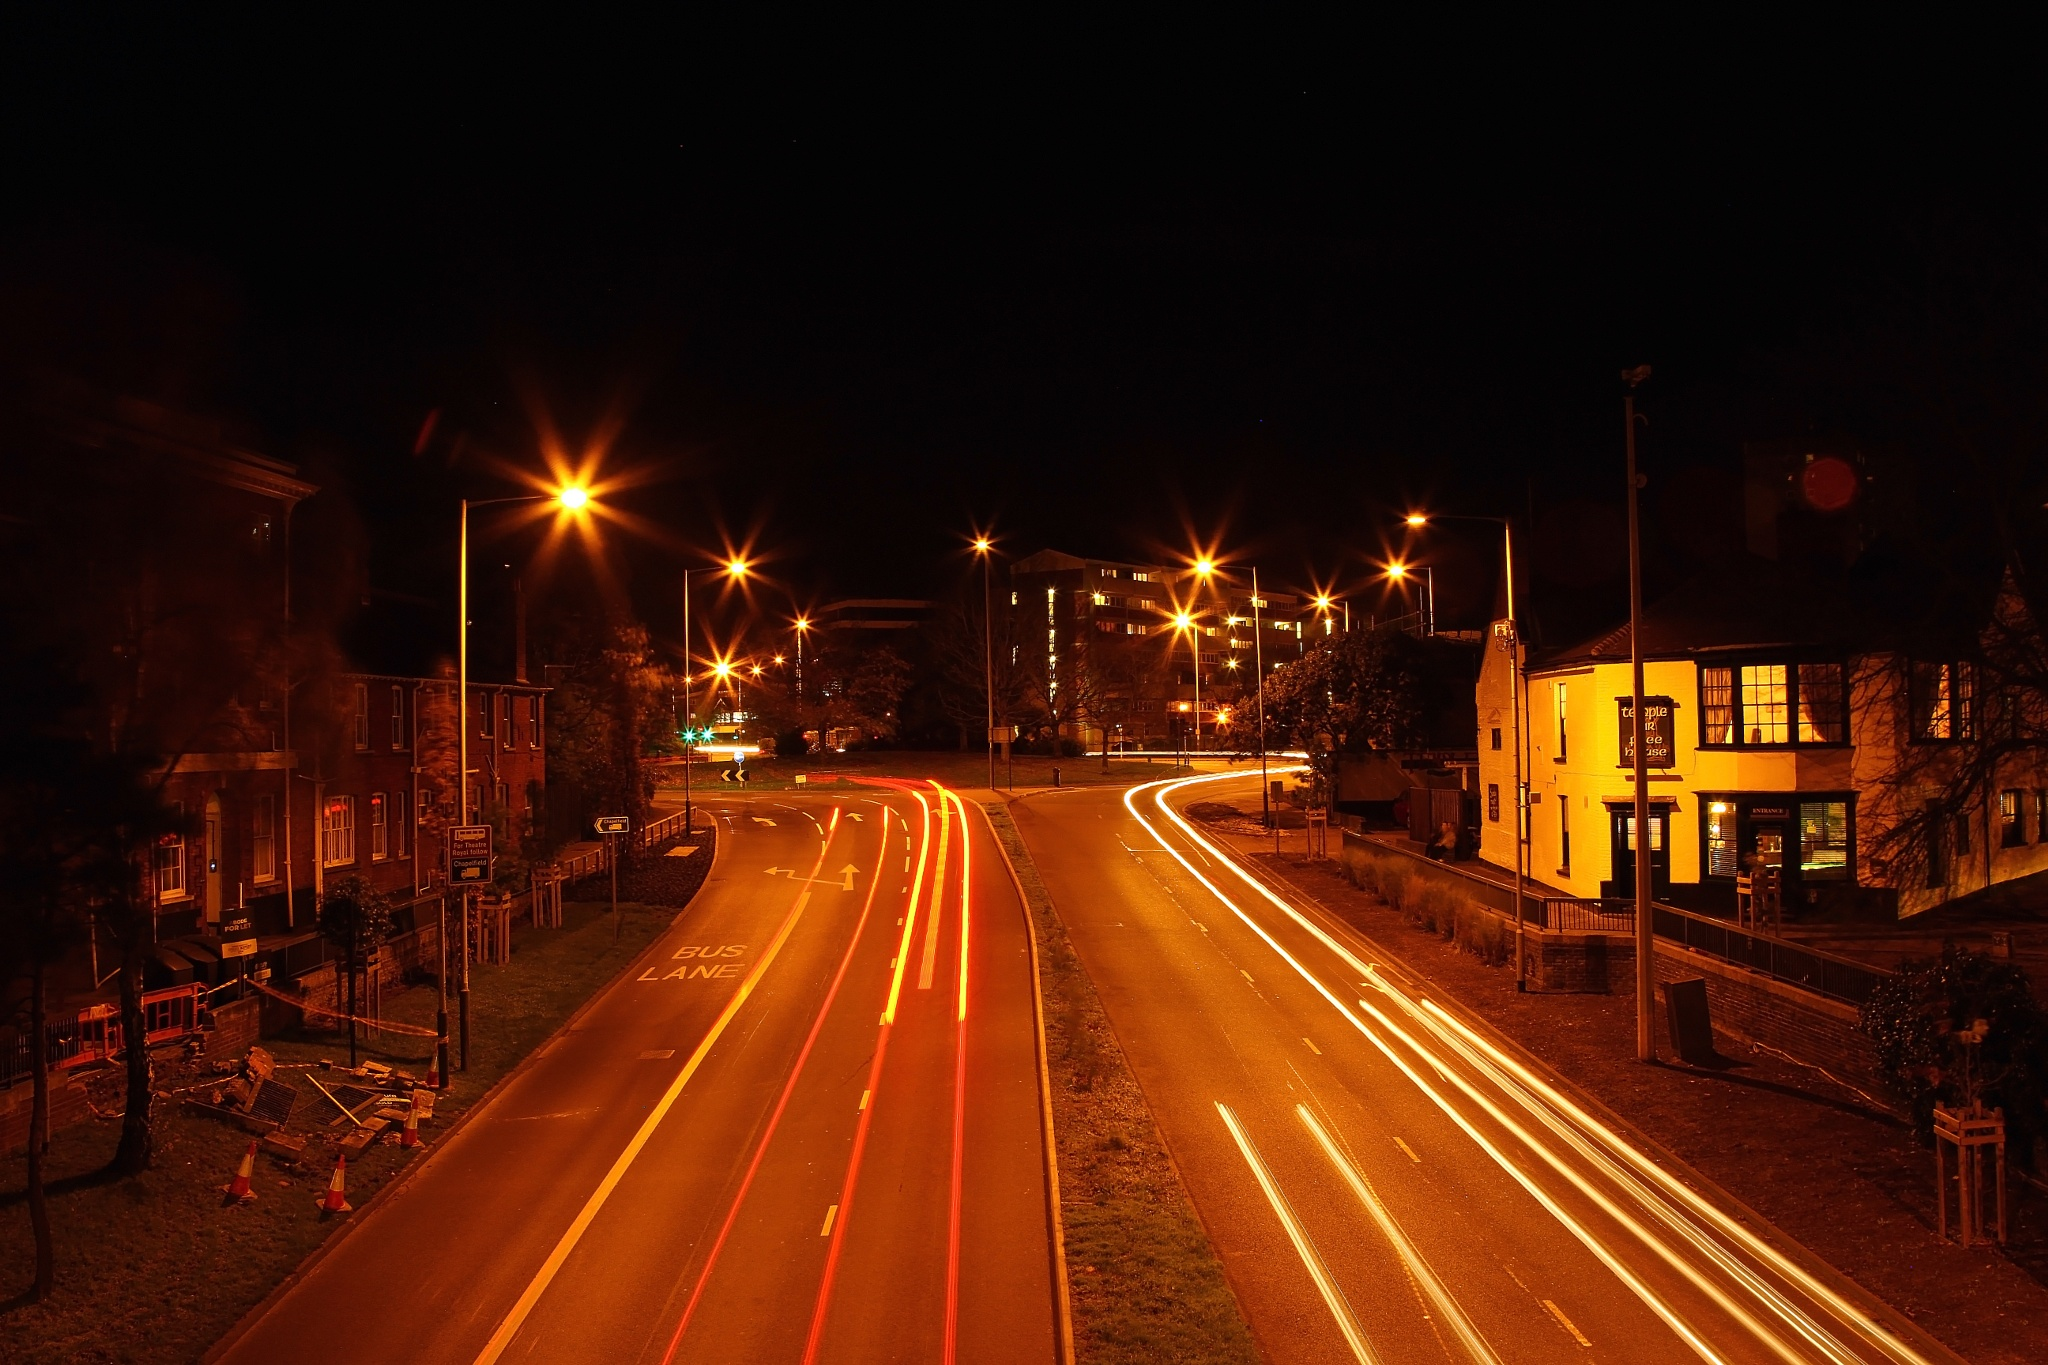 Light trails grapes hill norwich part 2 by Marie Thorne